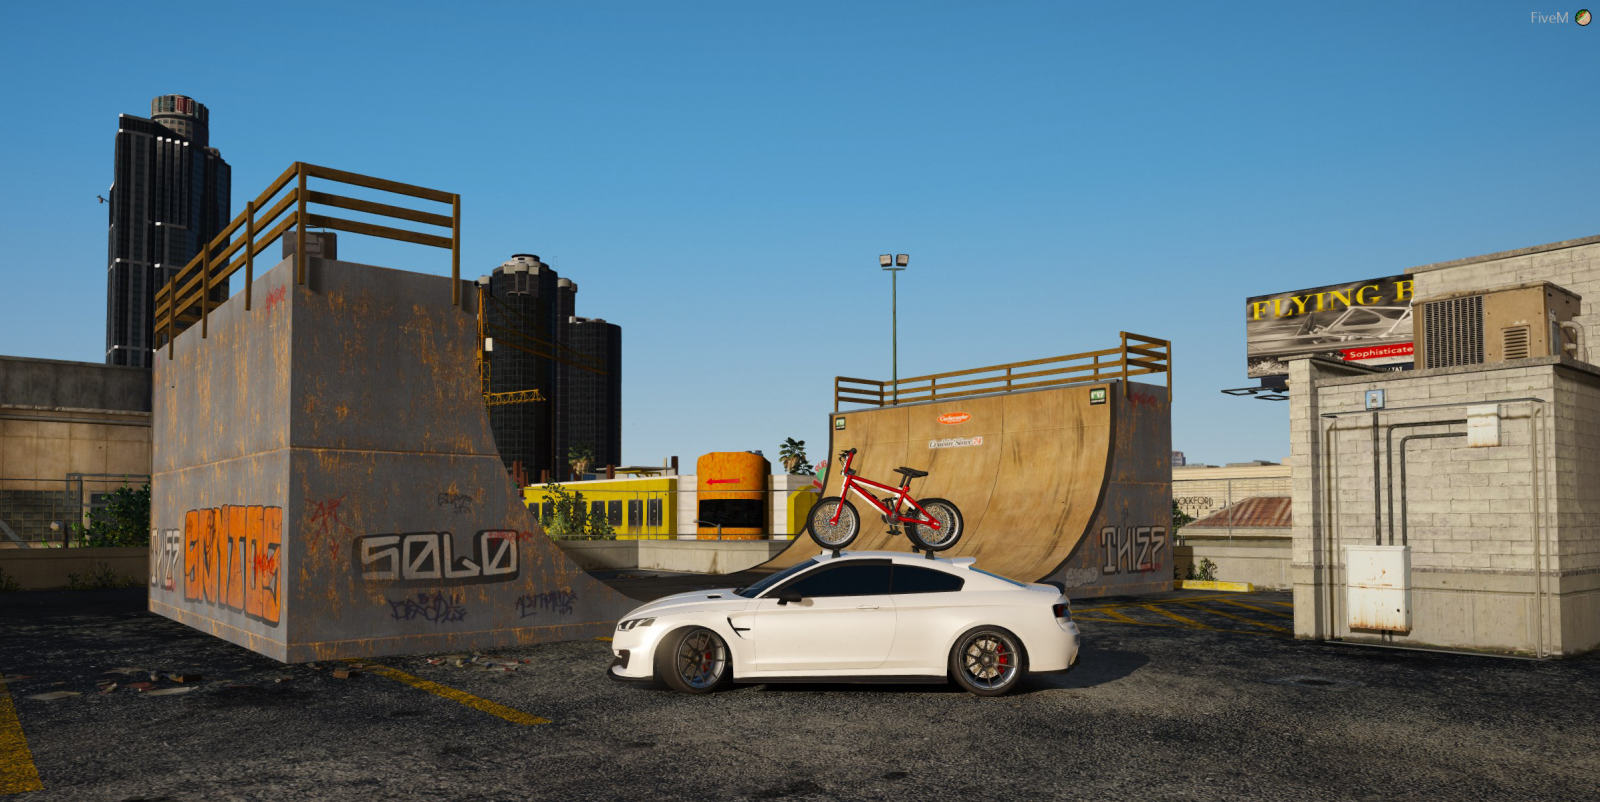 Out for some BMX